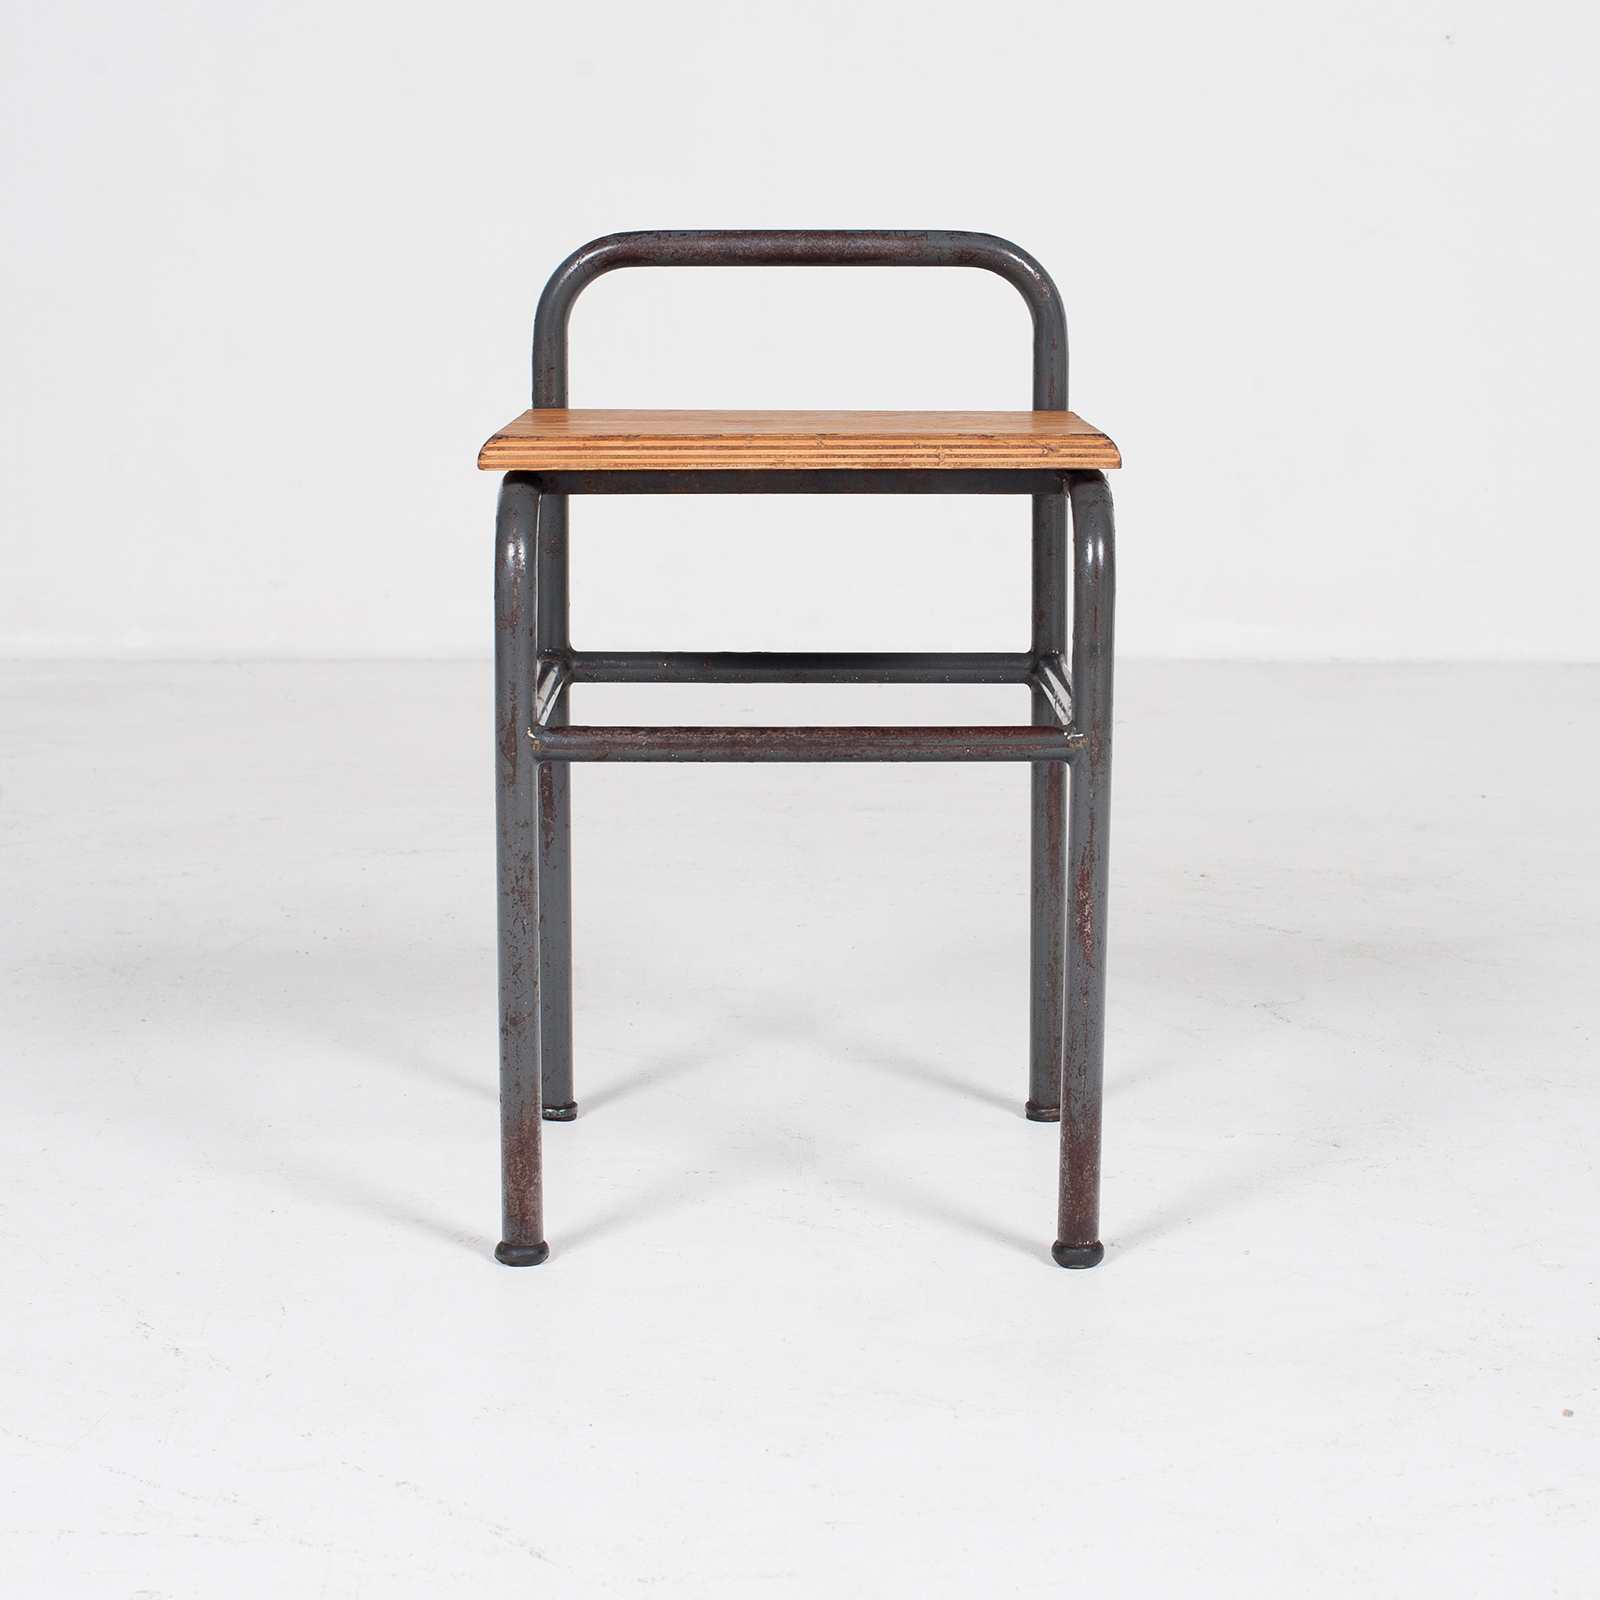 Industrial Stool With Timber Seat, Belgium2